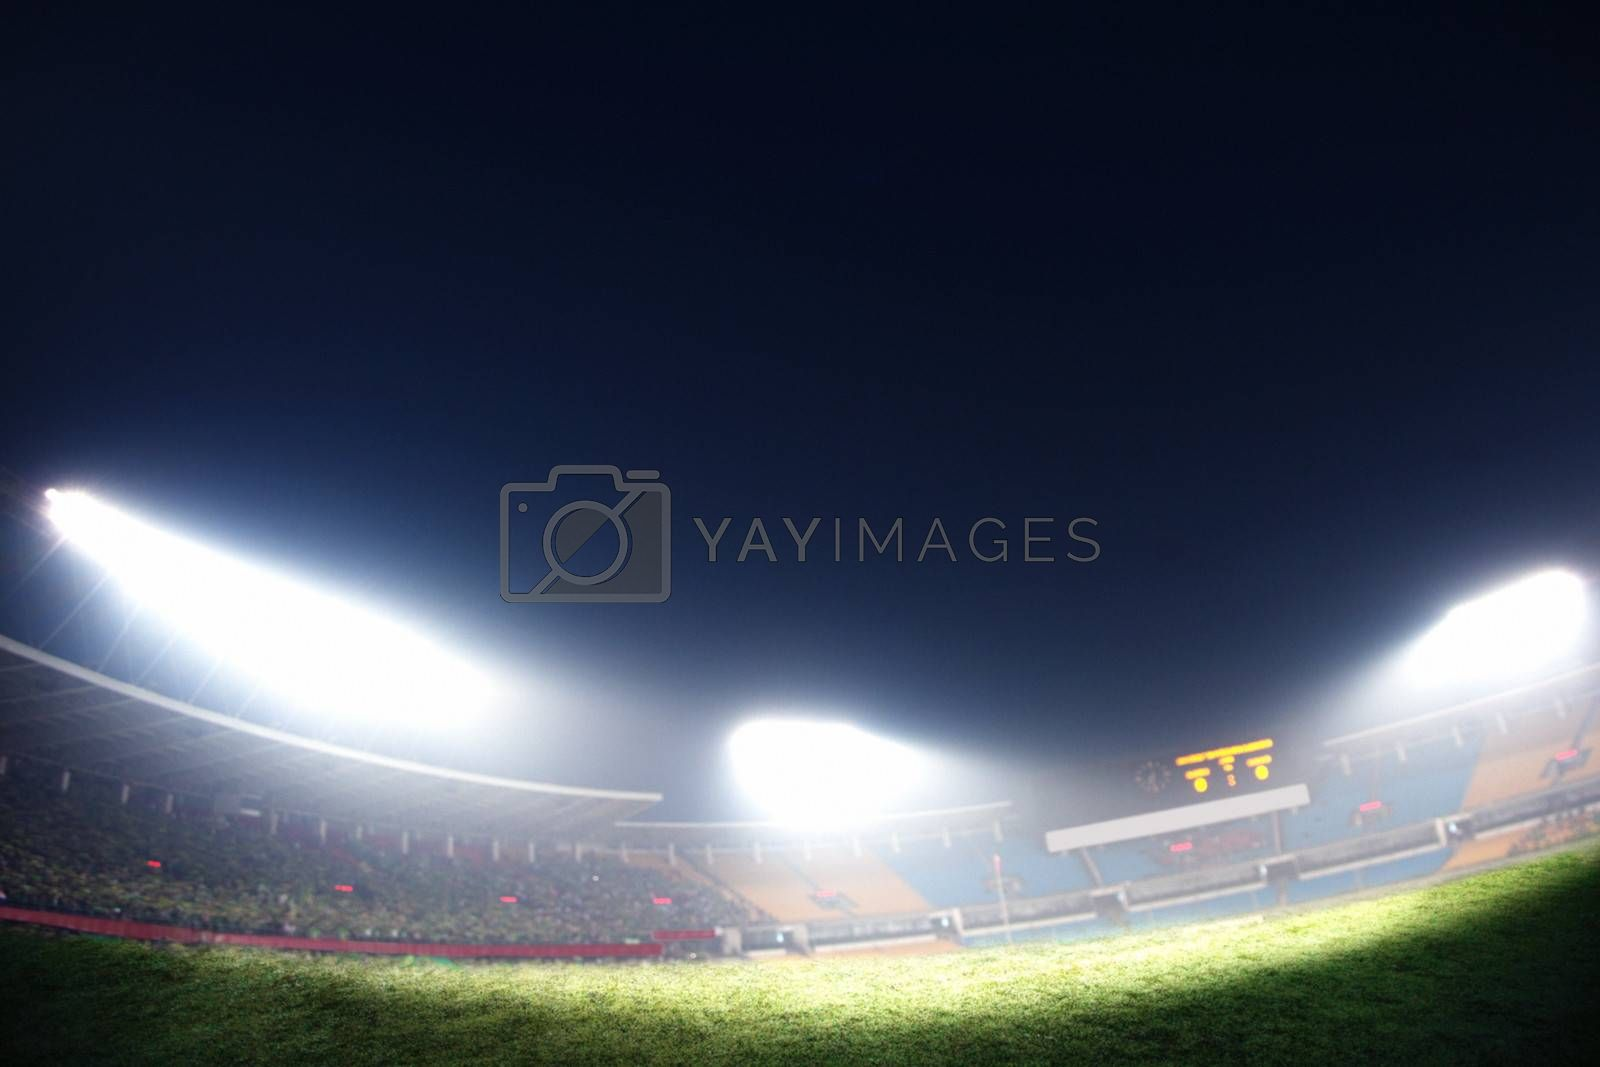 Digital composit of soccer field and night sky